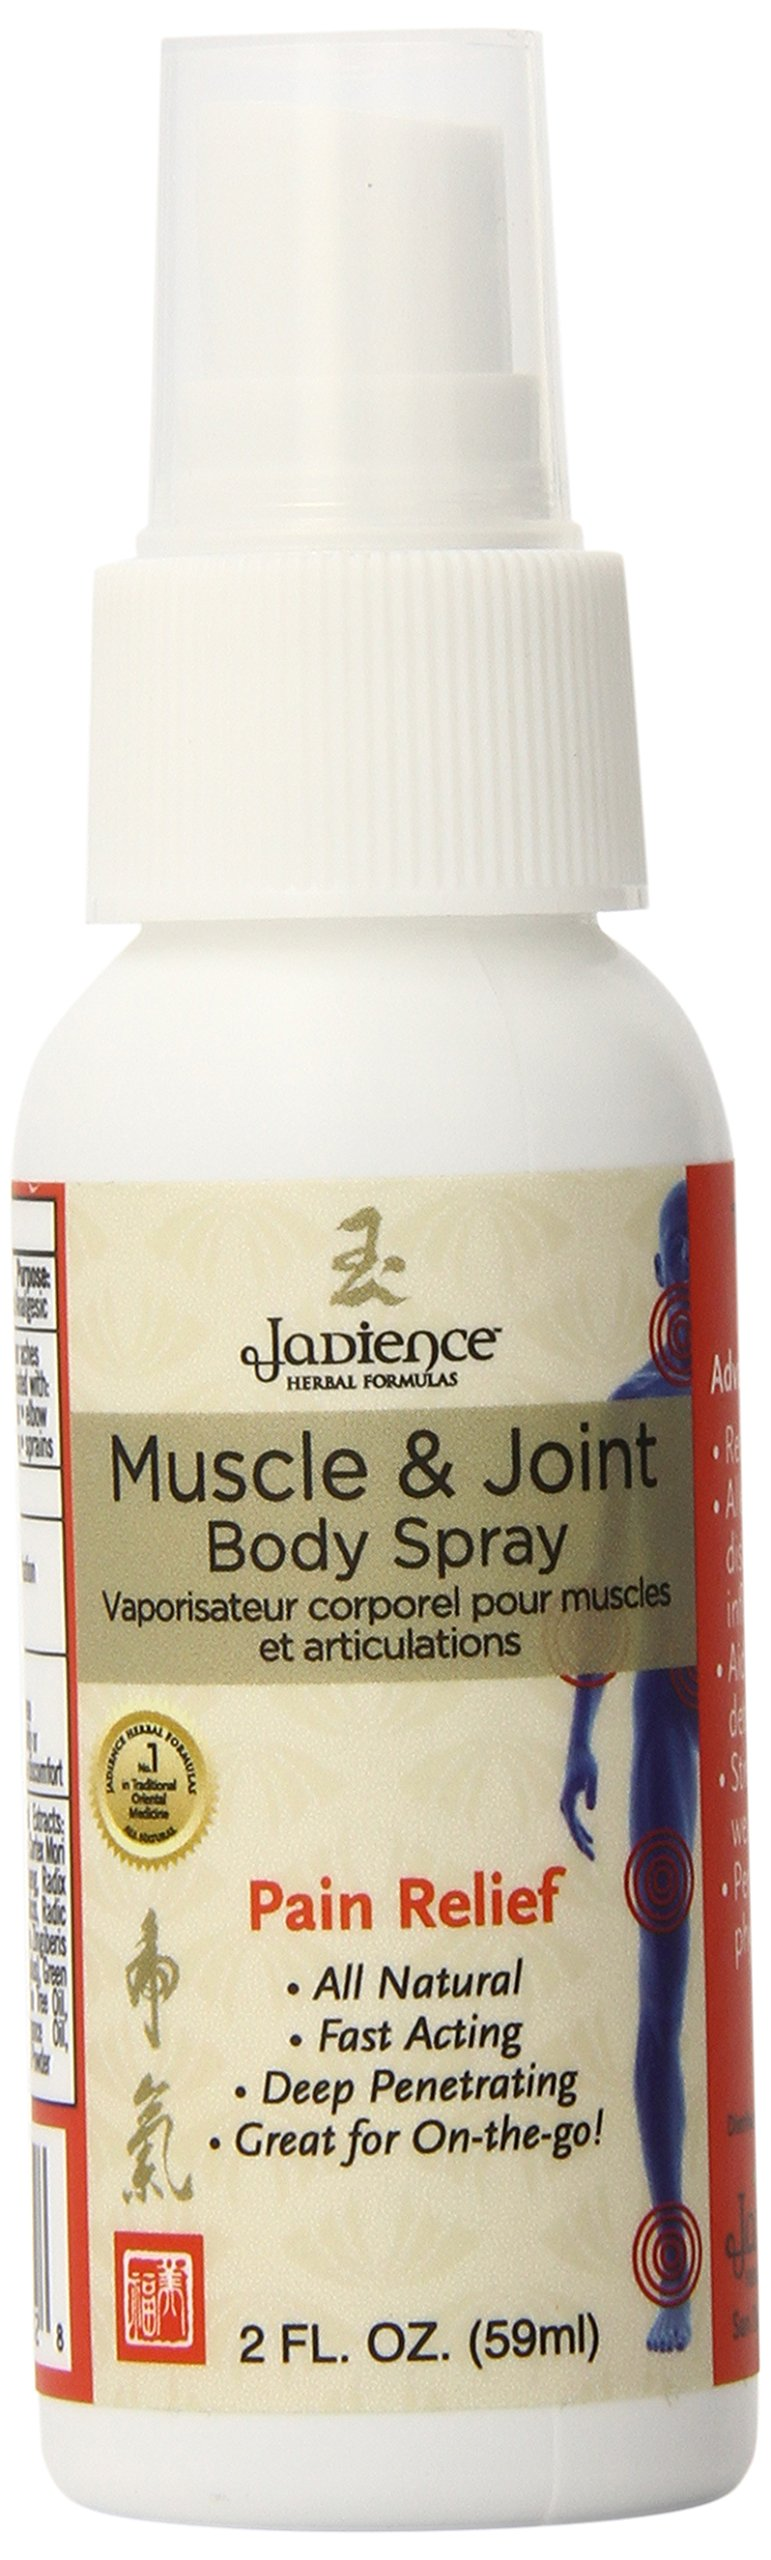 Amazon Com Jadience Dit Da Jow Muscle Amp Joint Foot Energy